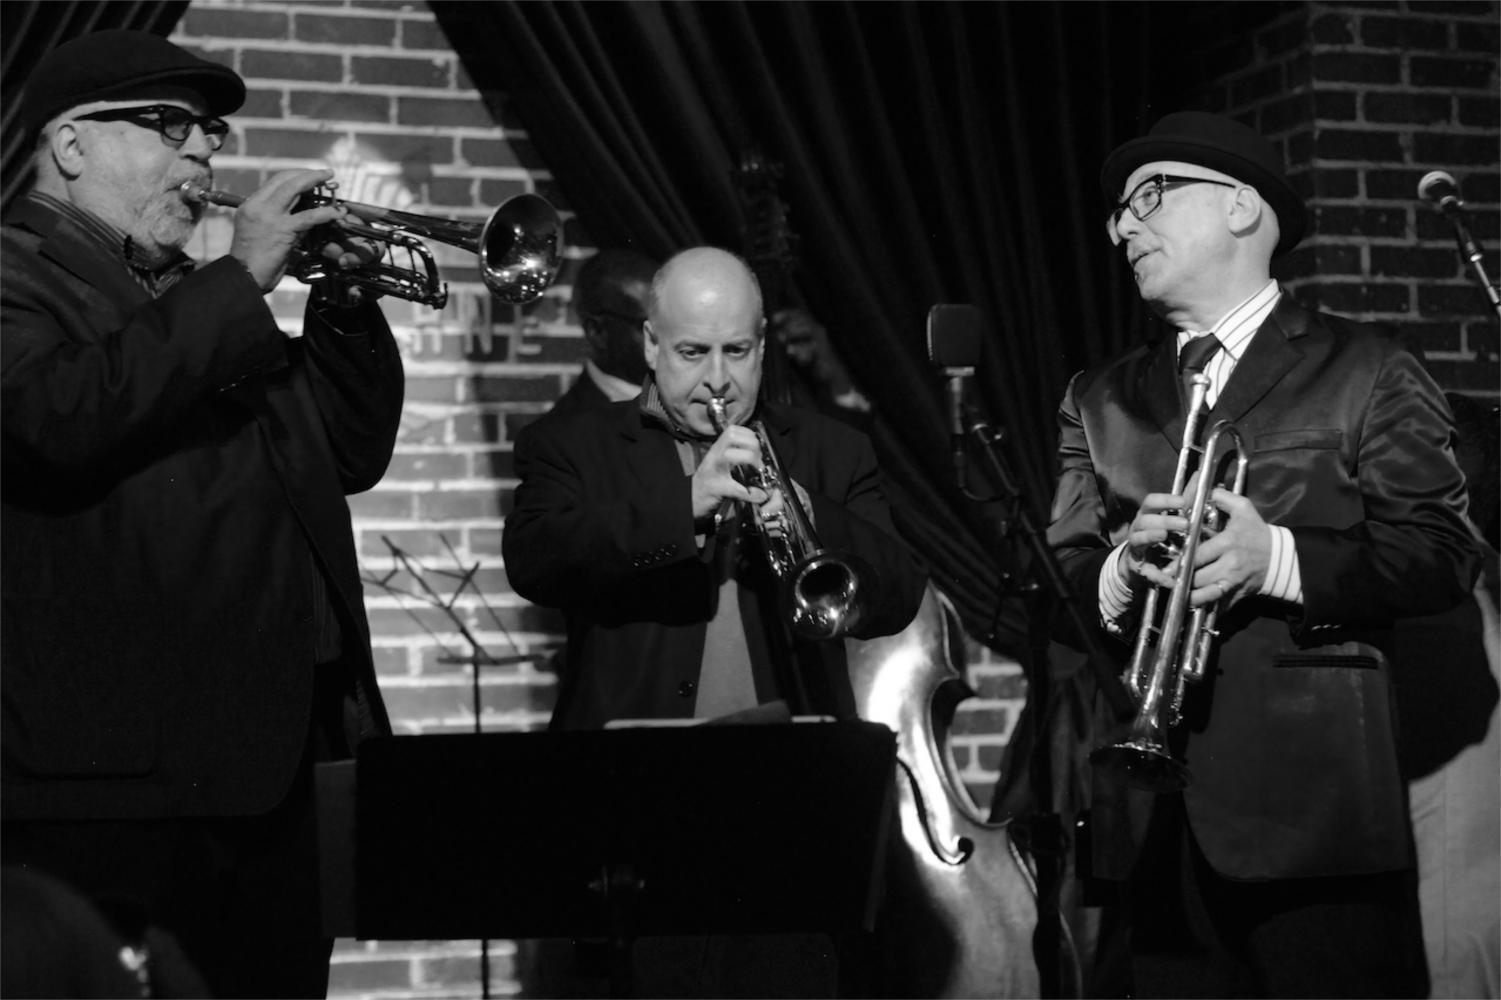 Randy Brecker, Greg Gisbert, Brian Lynch